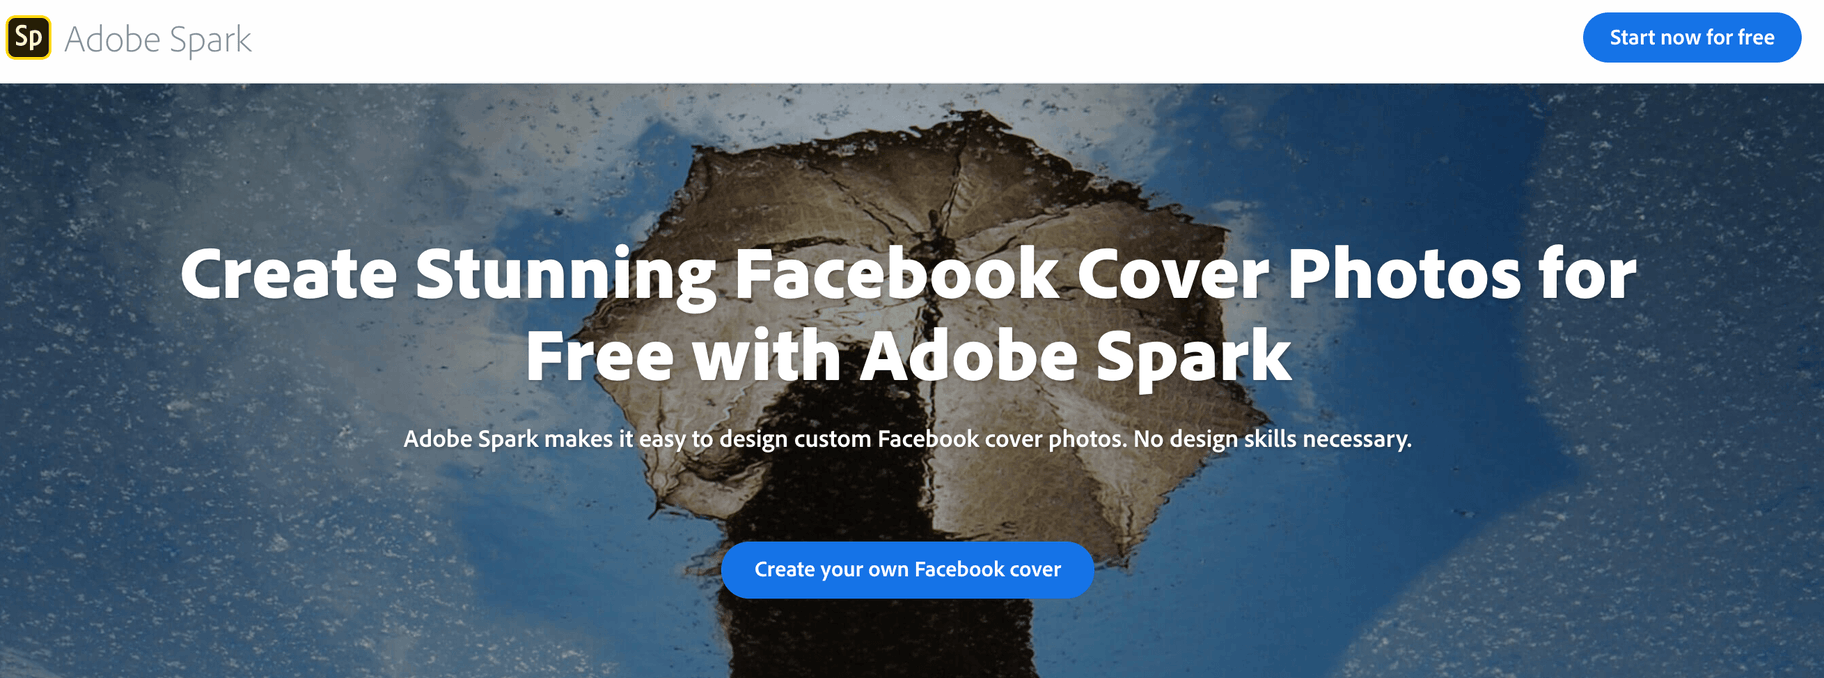 Adobe Spark Facebook Cover Photo Maker and Template